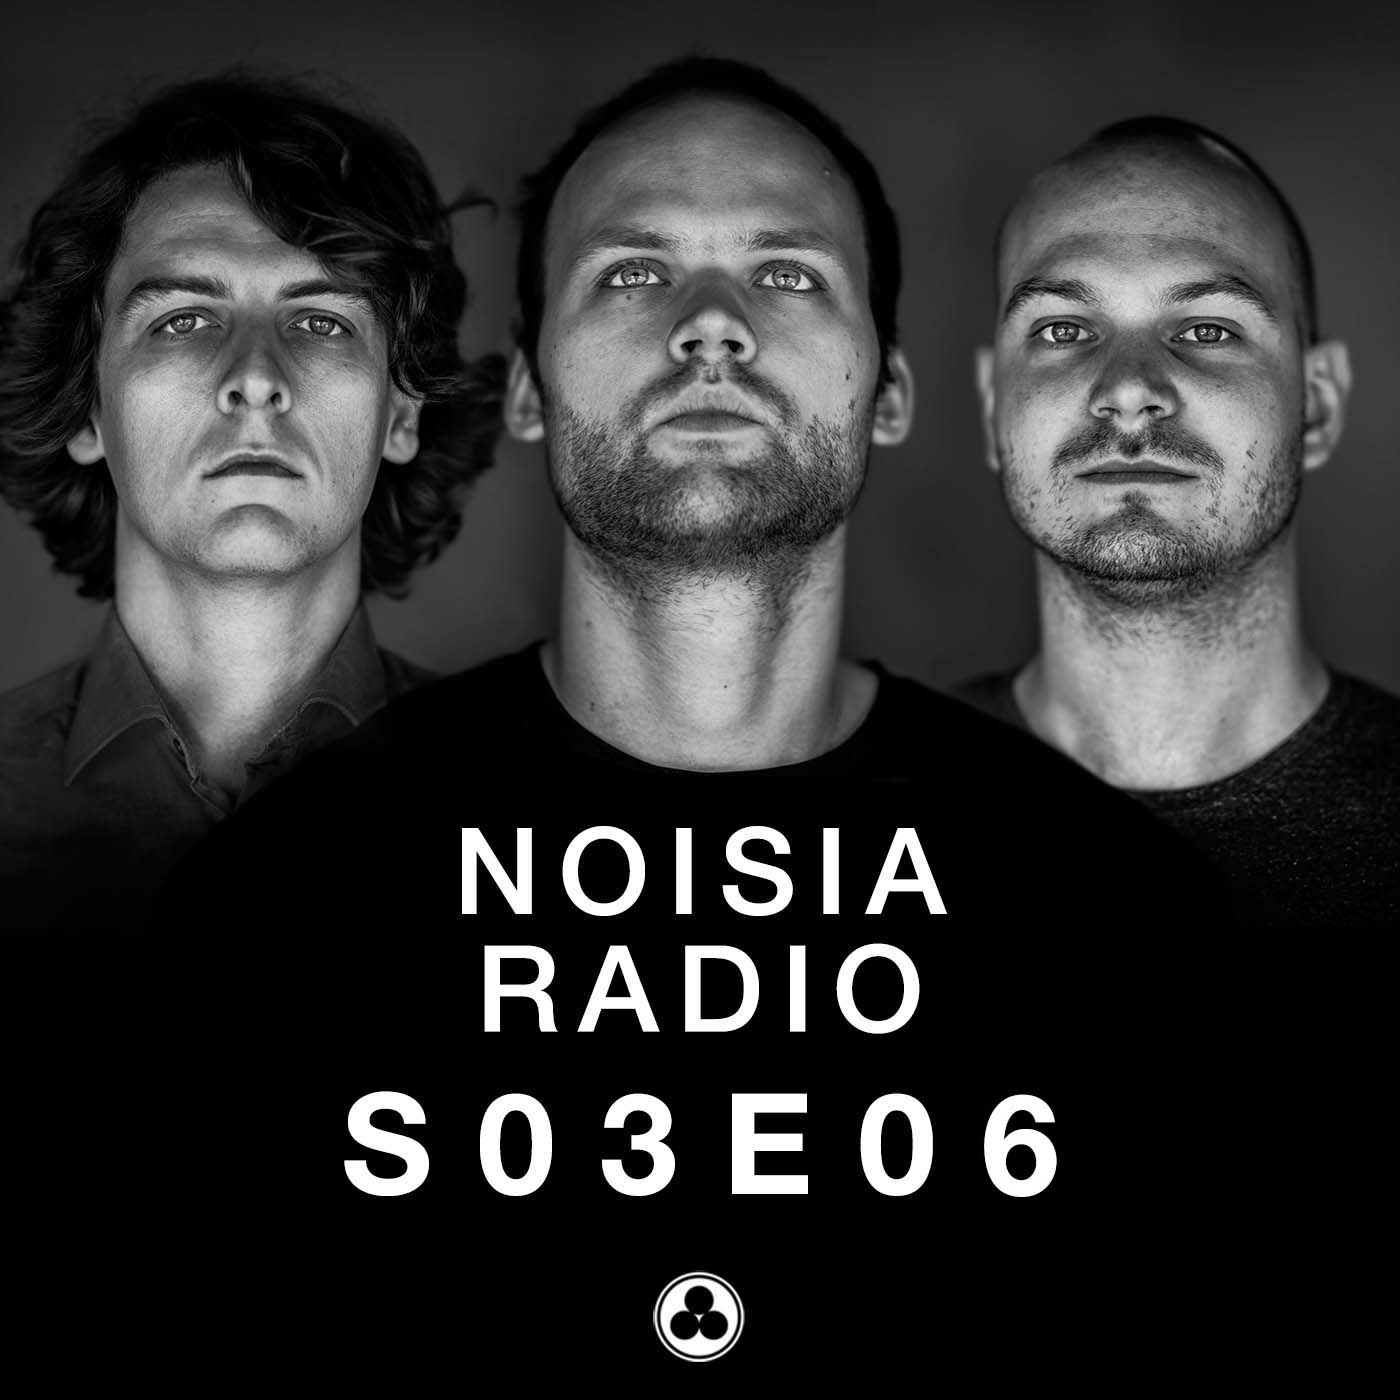 Noisia Radio S03E06